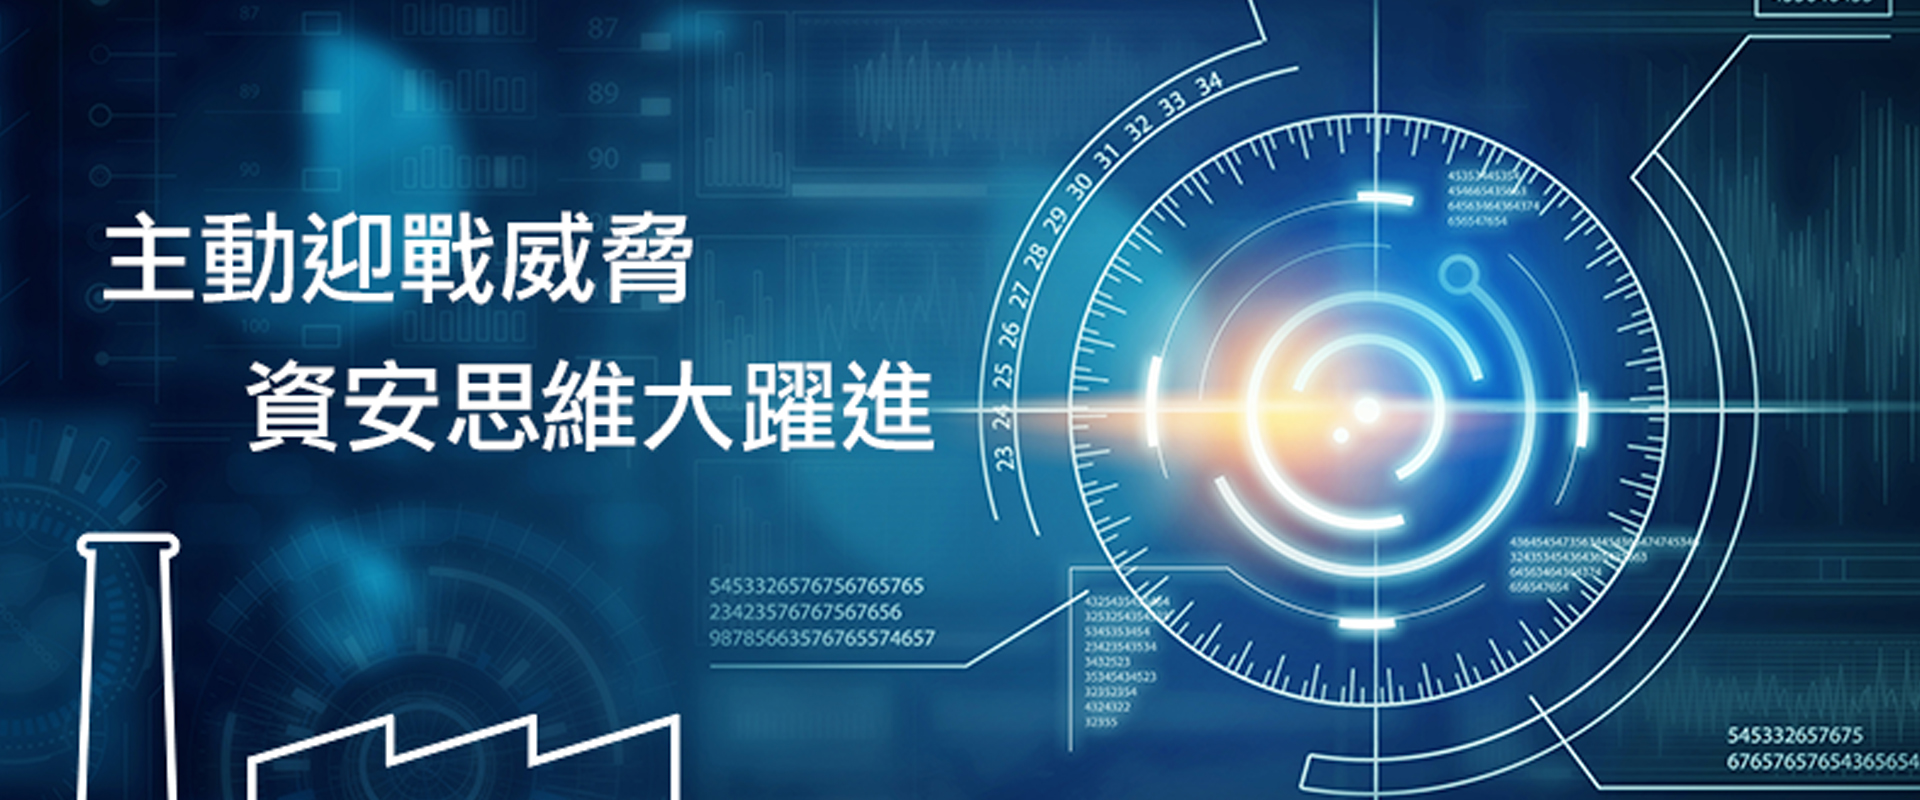 20170607_cybersecurity